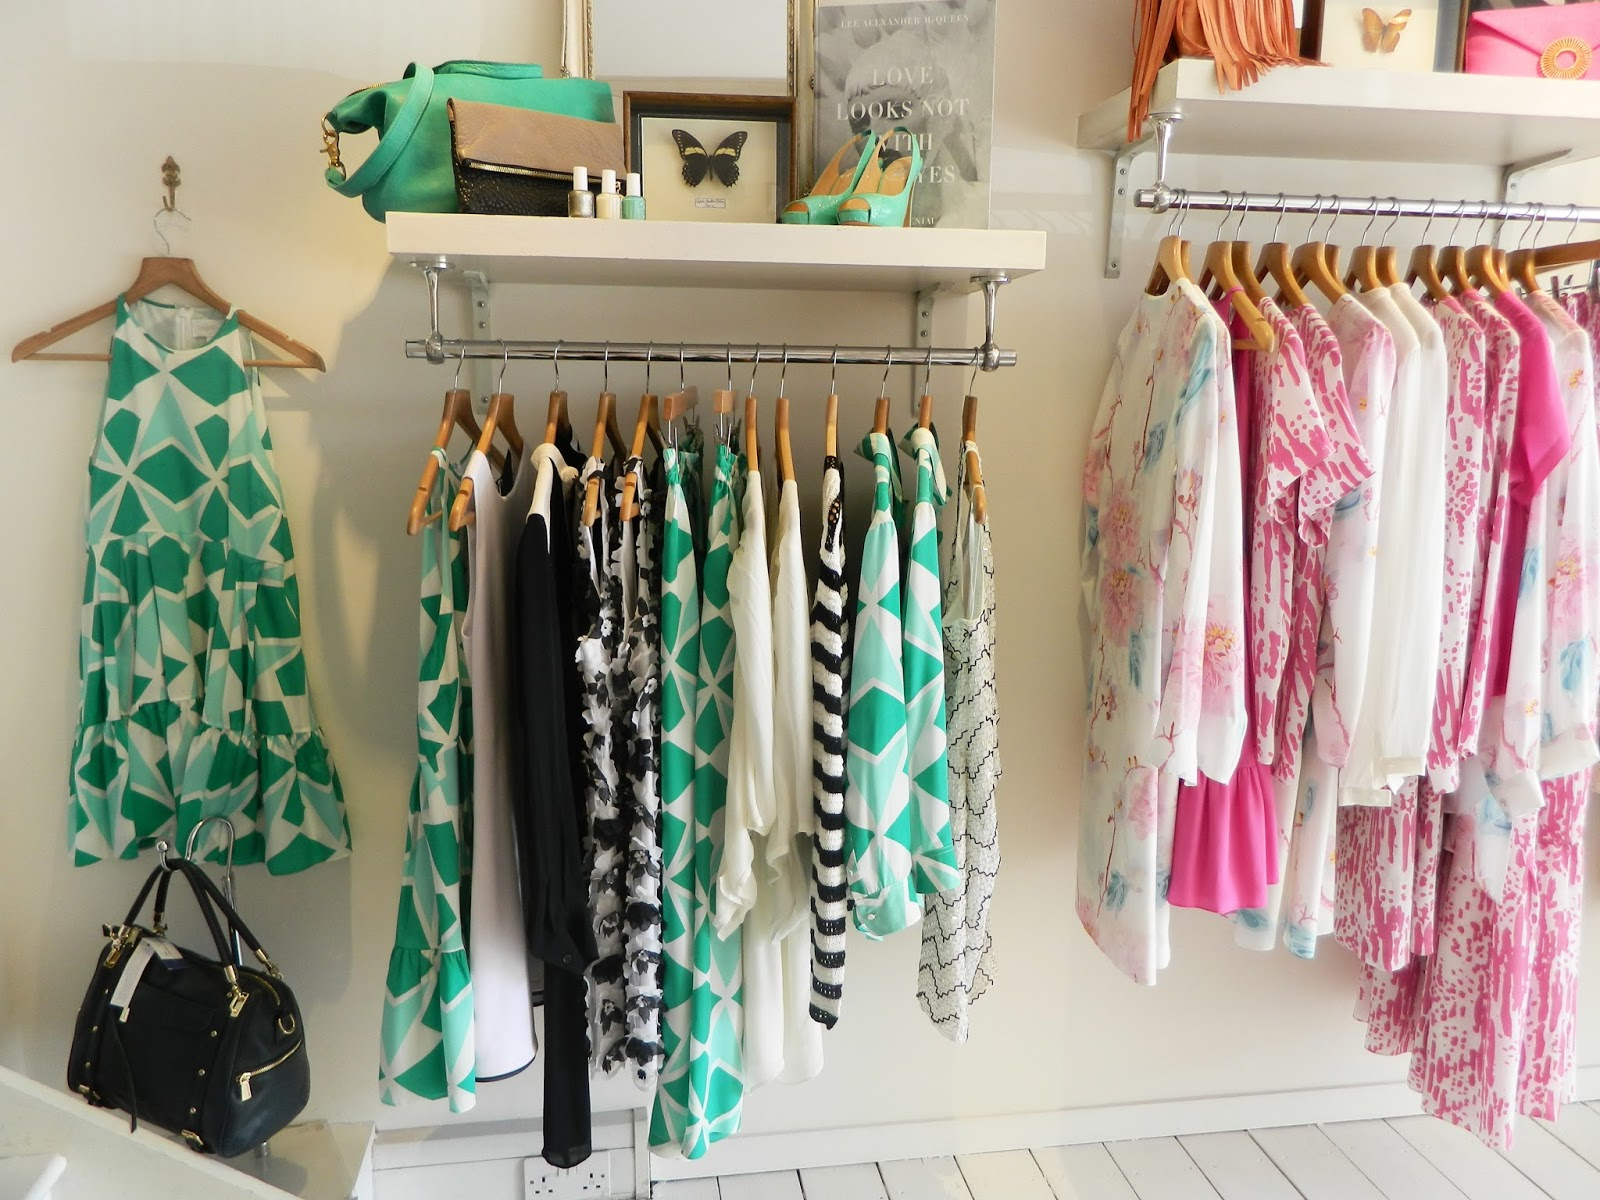 Fashion boutique drawer shelves and retail on pinterest - Burros para ropa ...